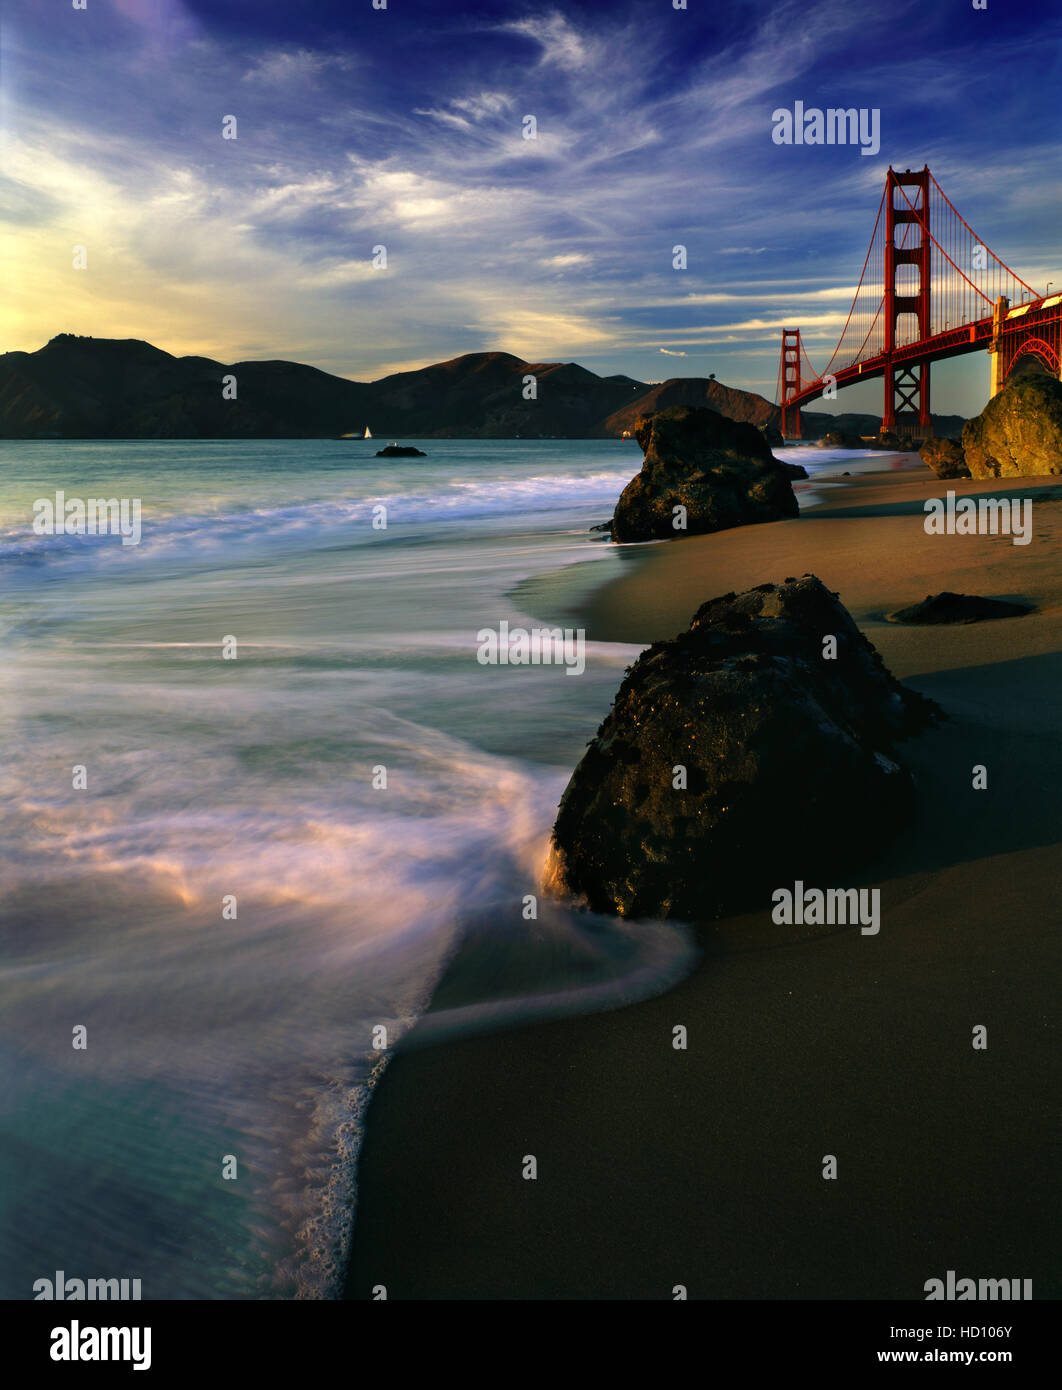 The Golden Gate Bridge During Sunset - Stock Image